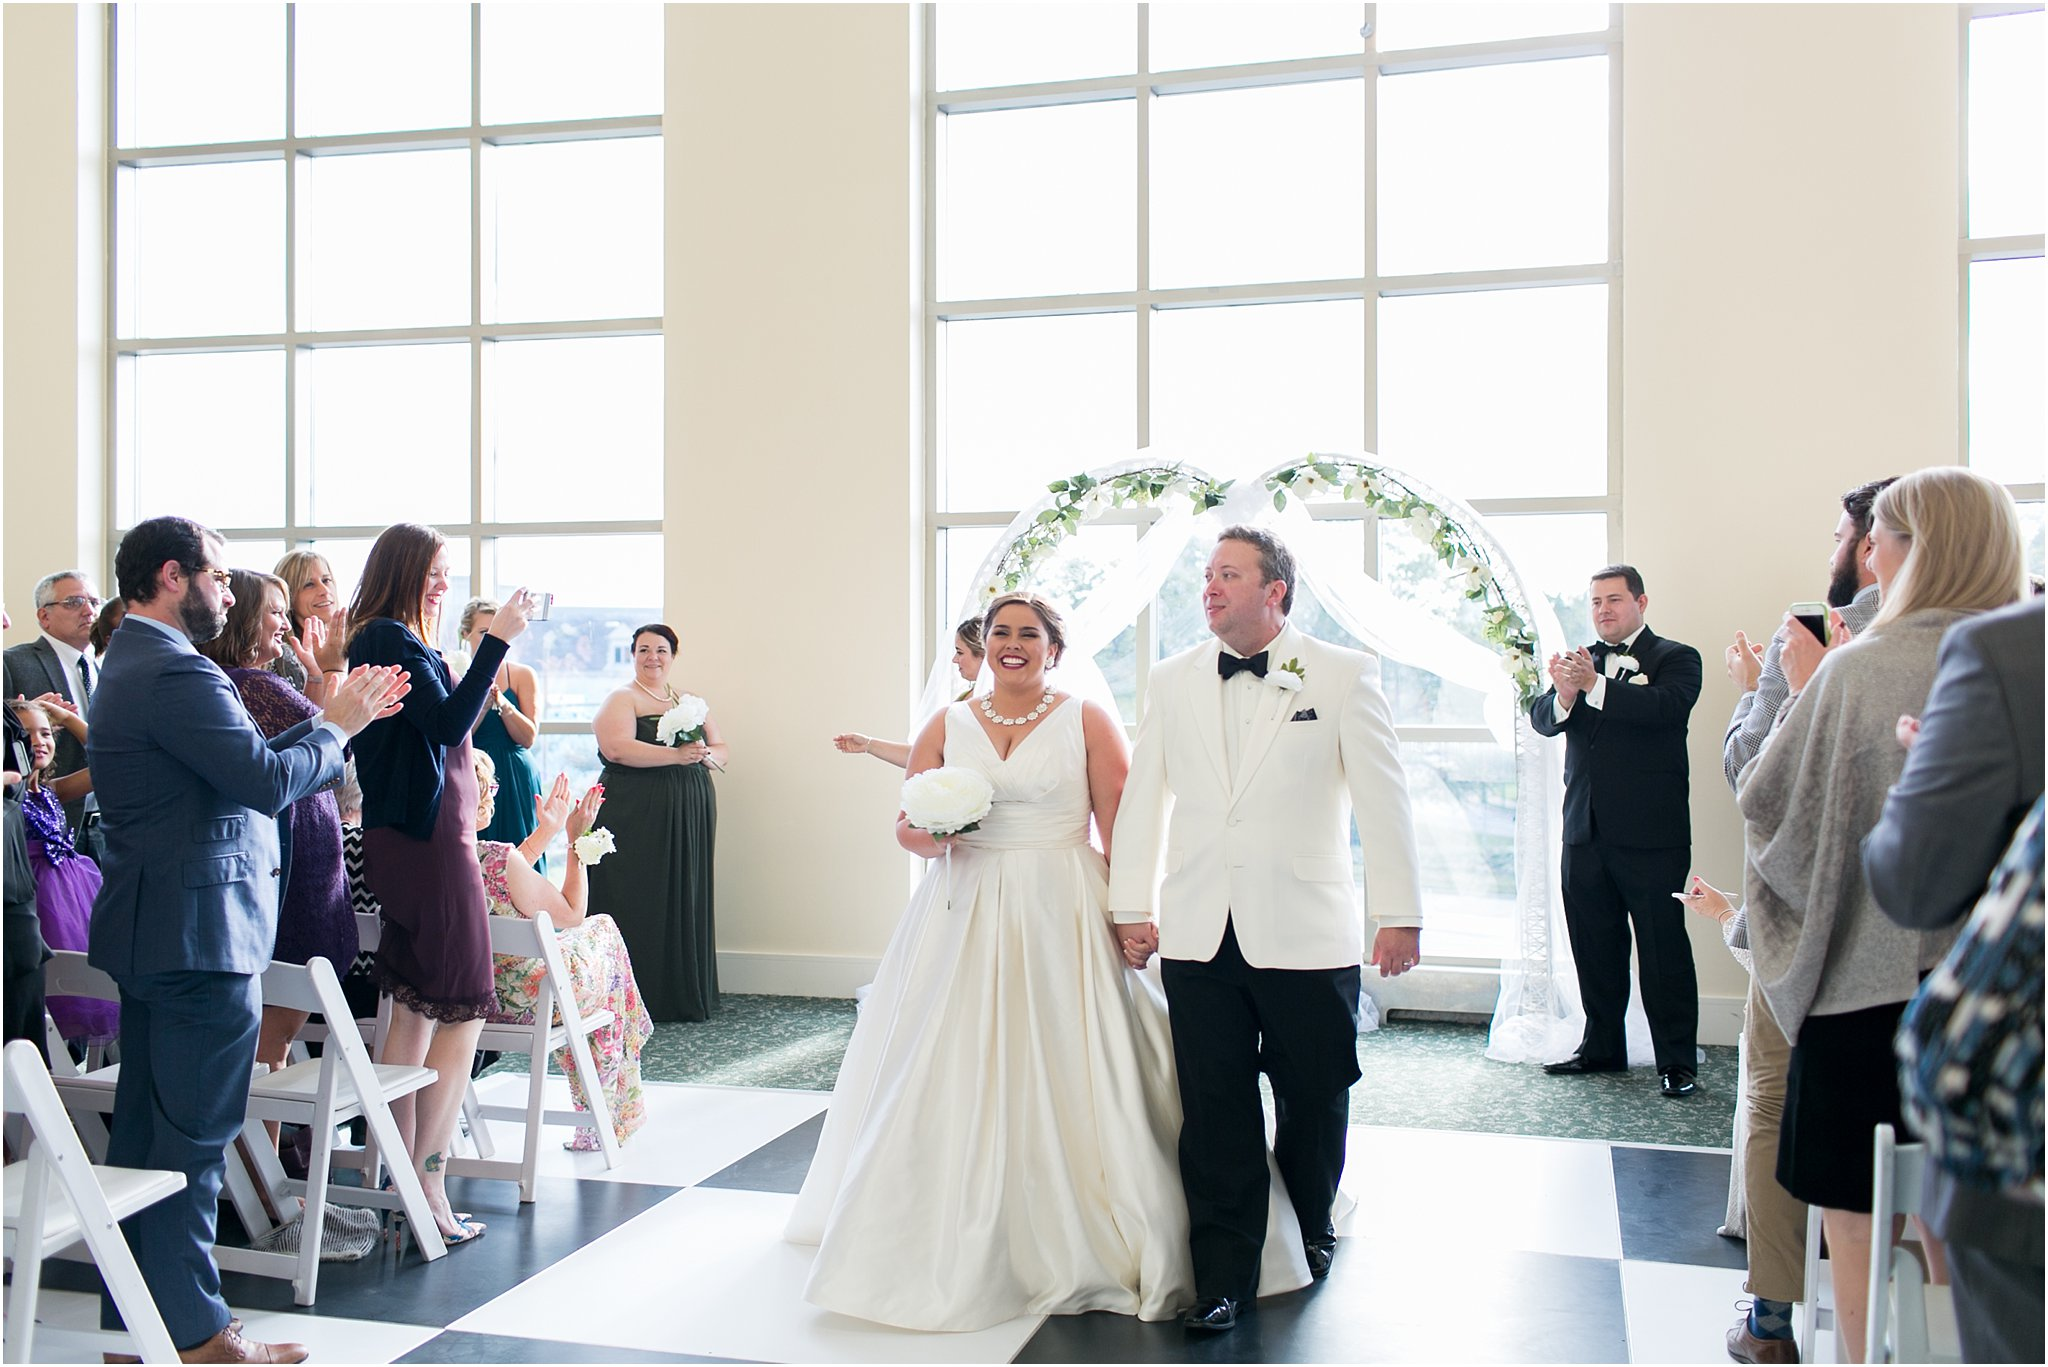 va_jessica_ryan_photography_virginia_wedding_norfolk_harrison_opera_house_norfolk_arts_district_portraits_3791